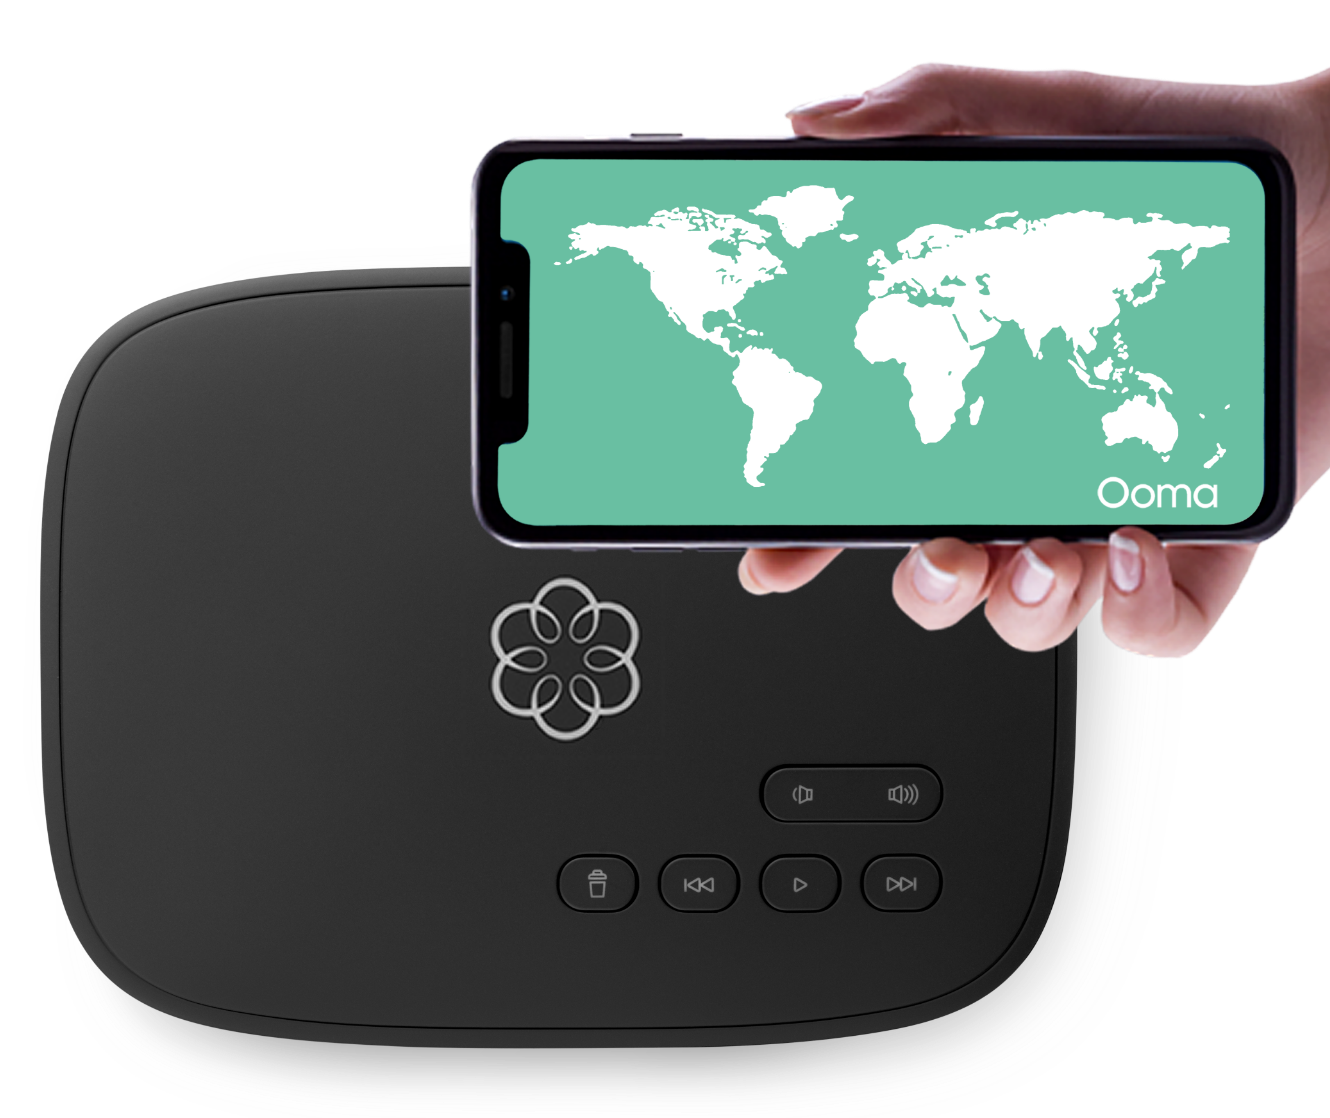 Ooma World Plan: Unlimited international calling image - Telo with Ooma App